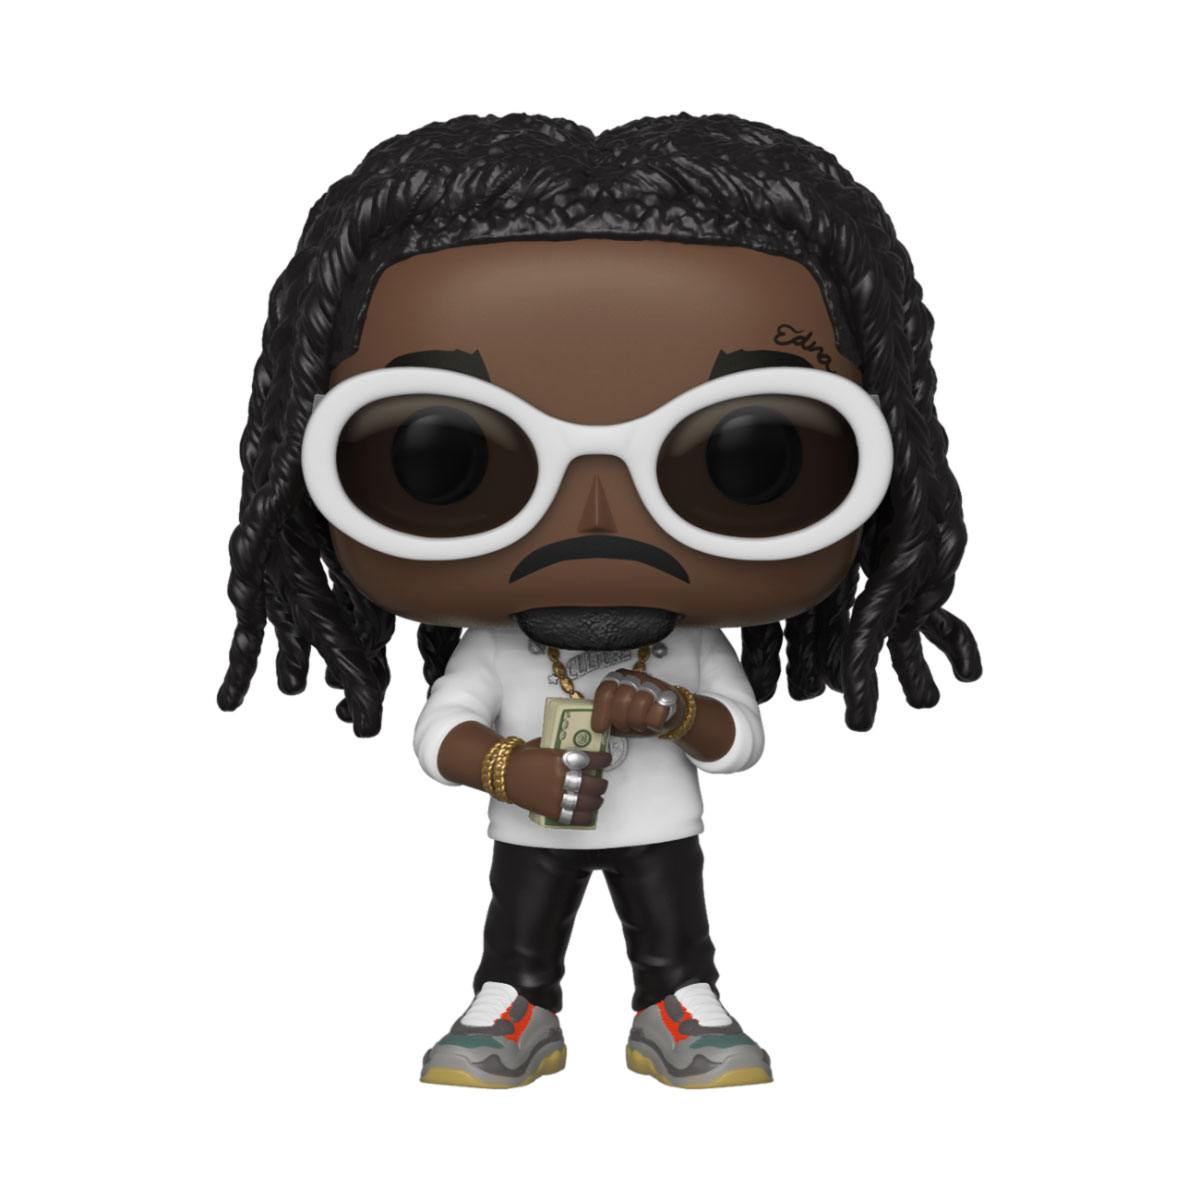 Migos POP! Rocks Vinyl Figure Takeoff 9 cm